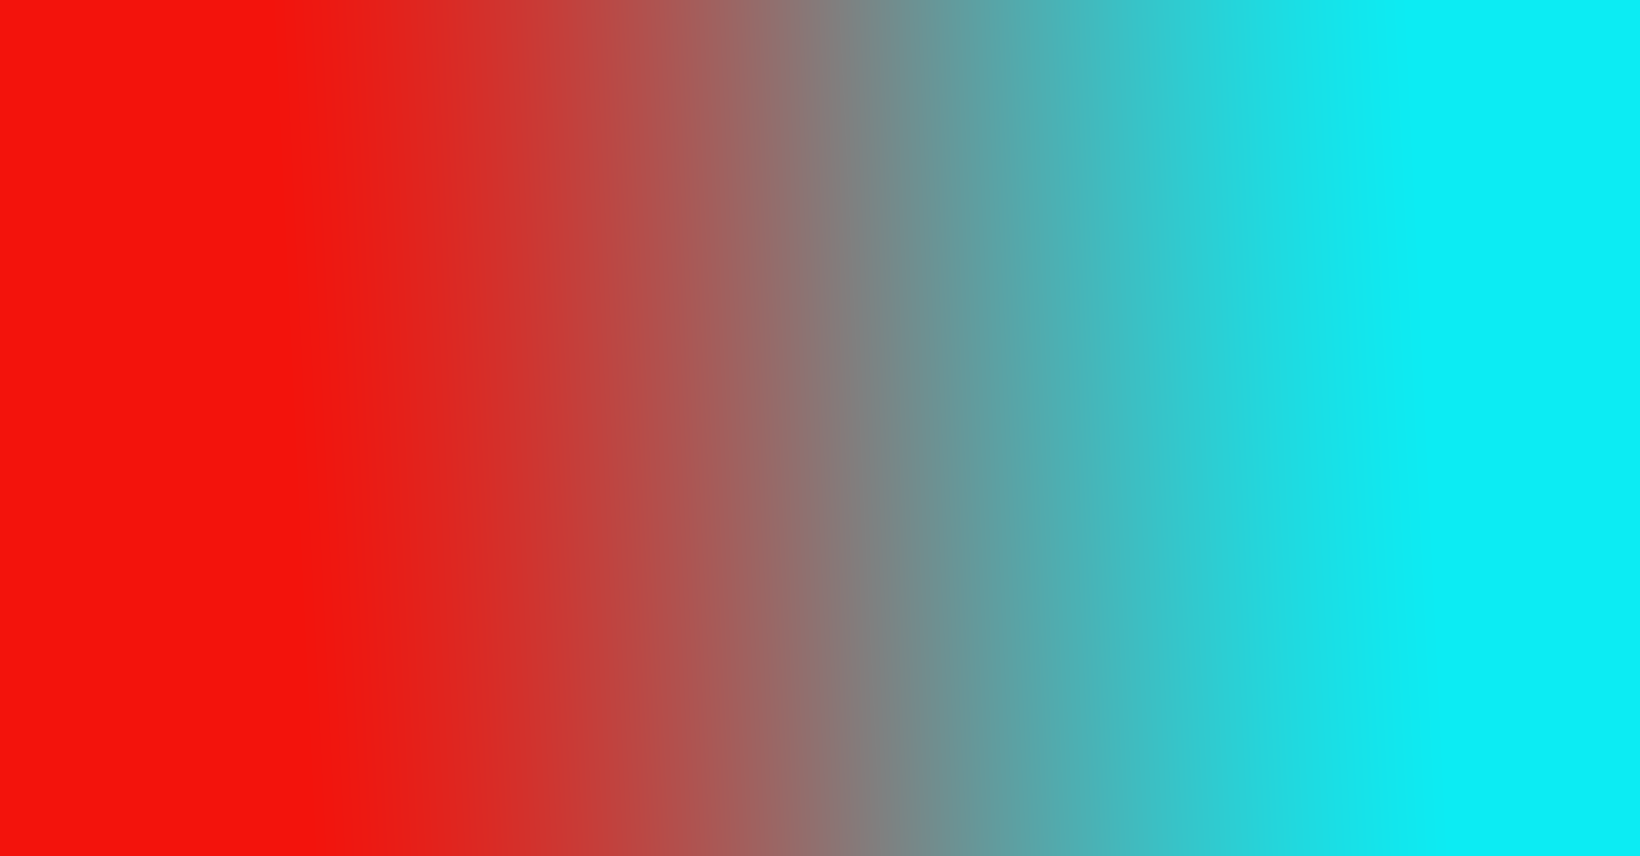 Image showing why complimentary colors don't work for gradients